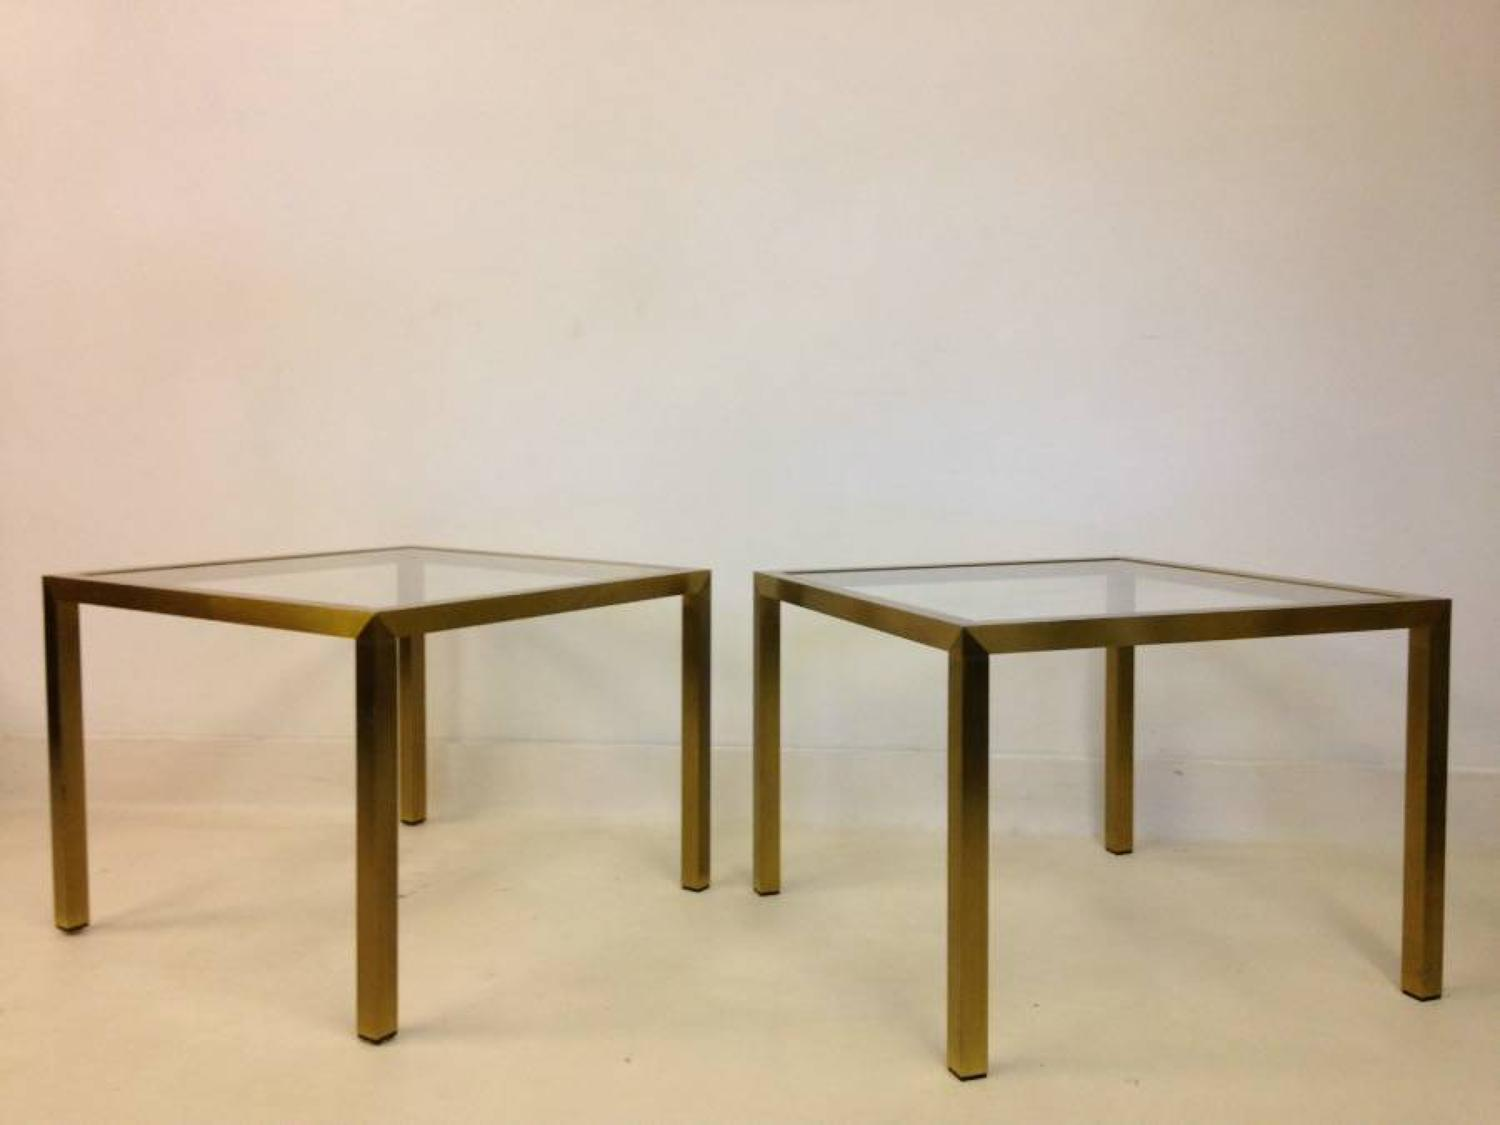 A pair of brushed brass side tables